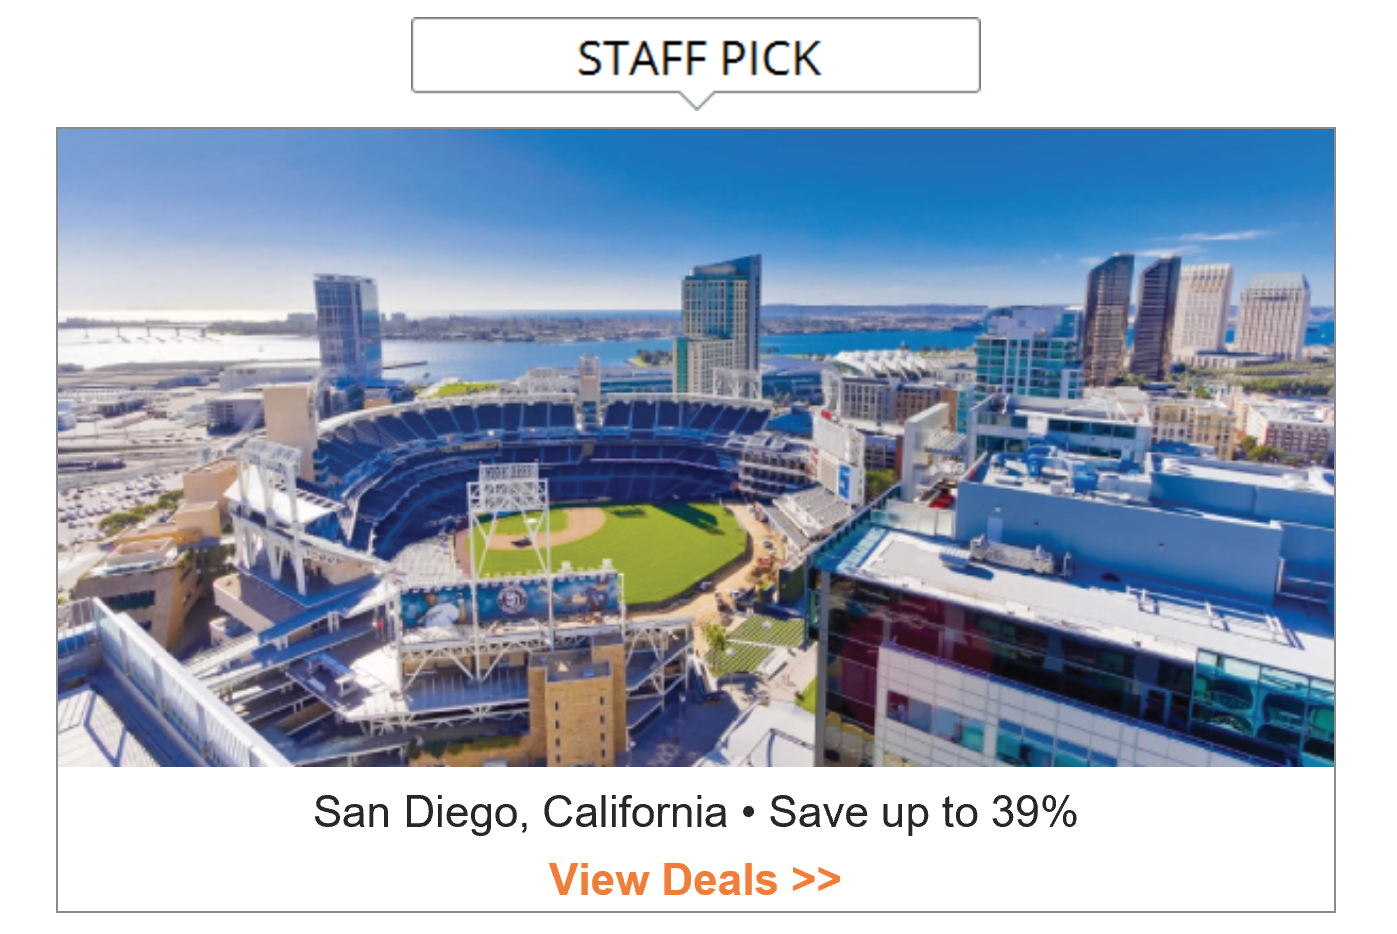 San Diego, CA Deals